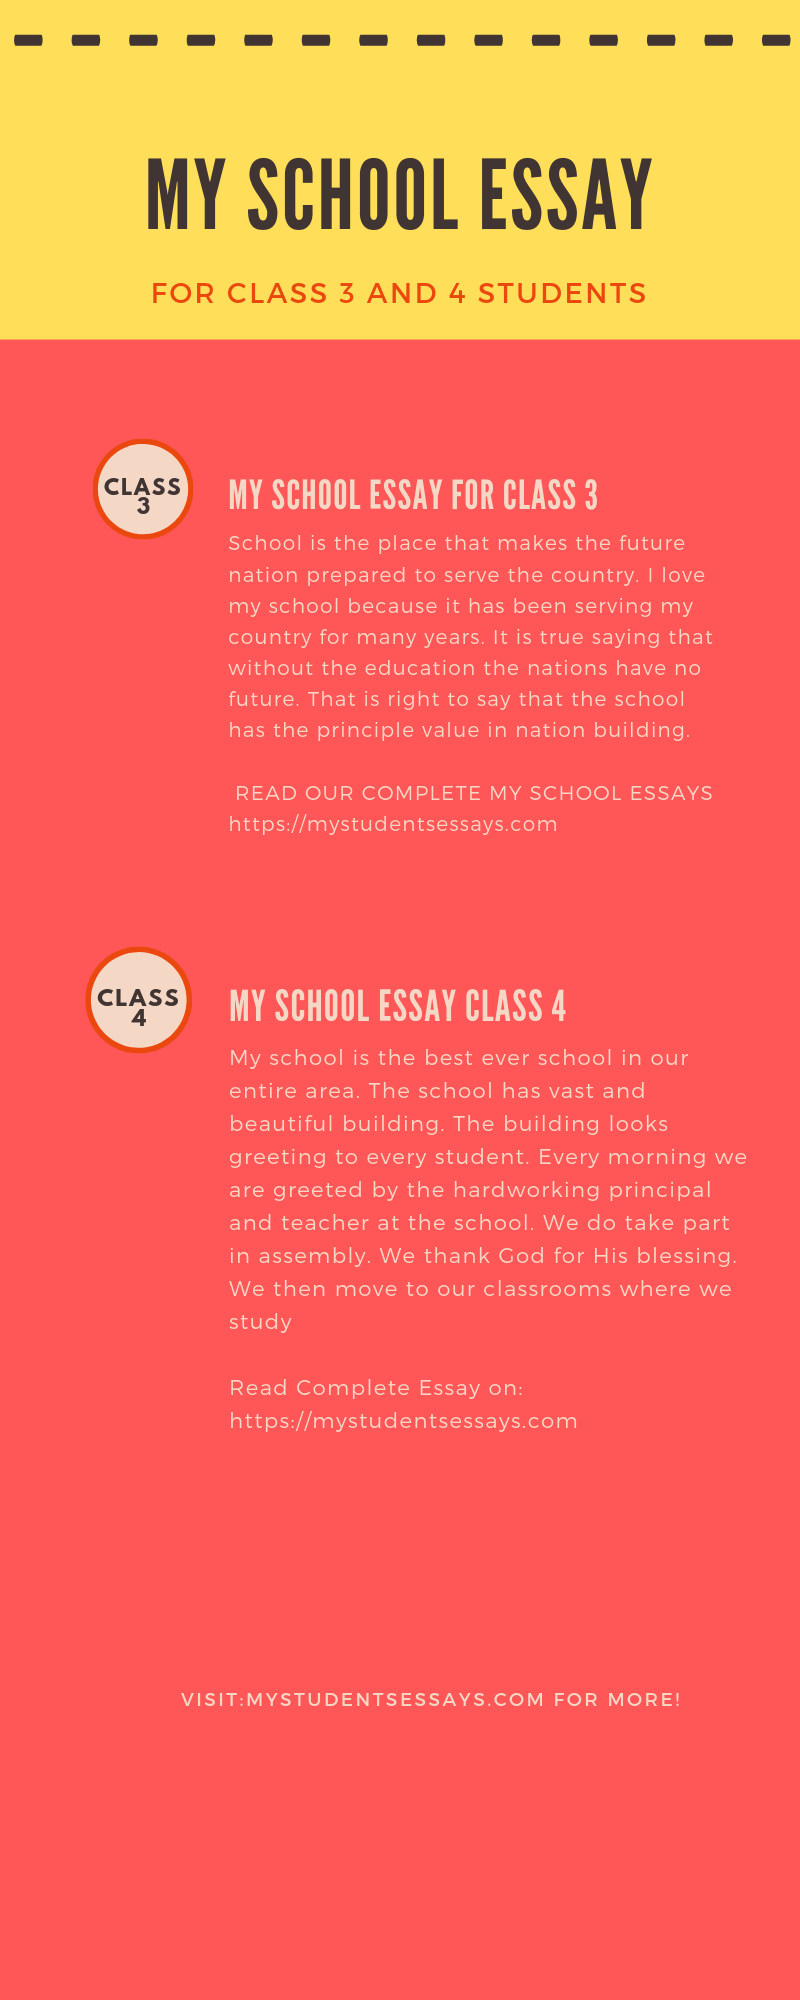 Essay of my school